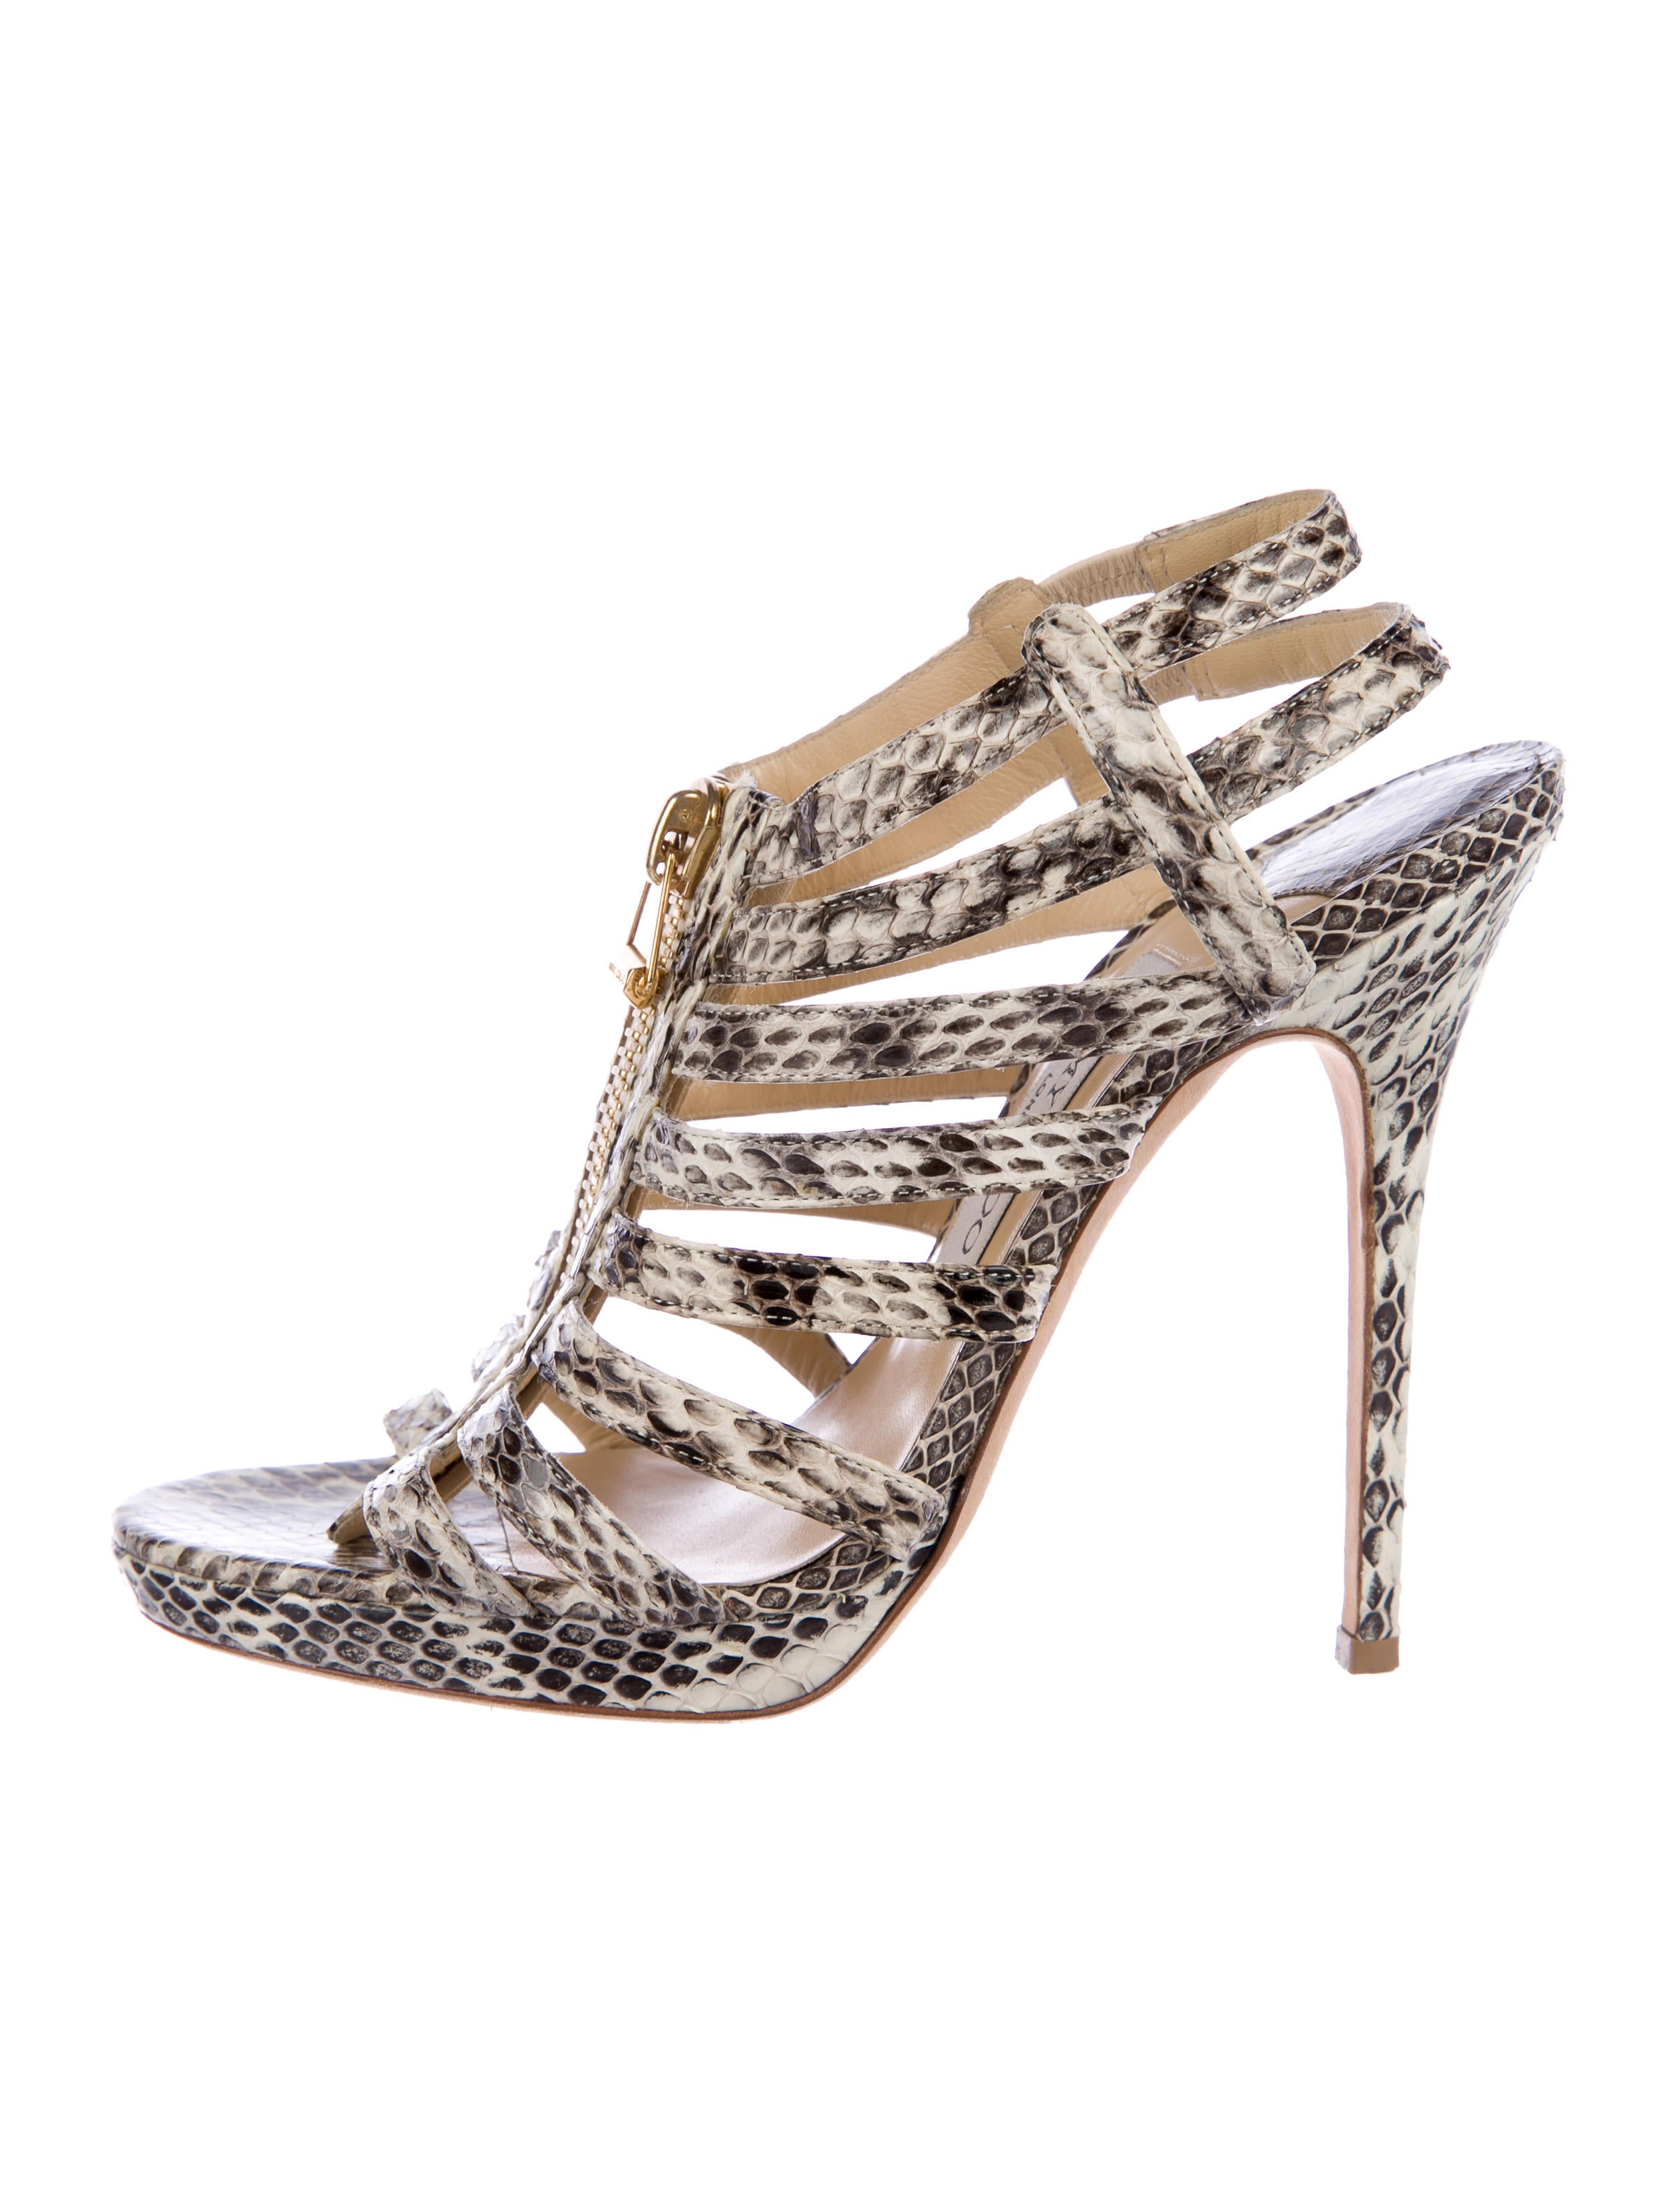 clearance wiki recommend cheap online Jimmy Choo Snakeskin Cage Sandals cheap explore RLSw3tJ4YT